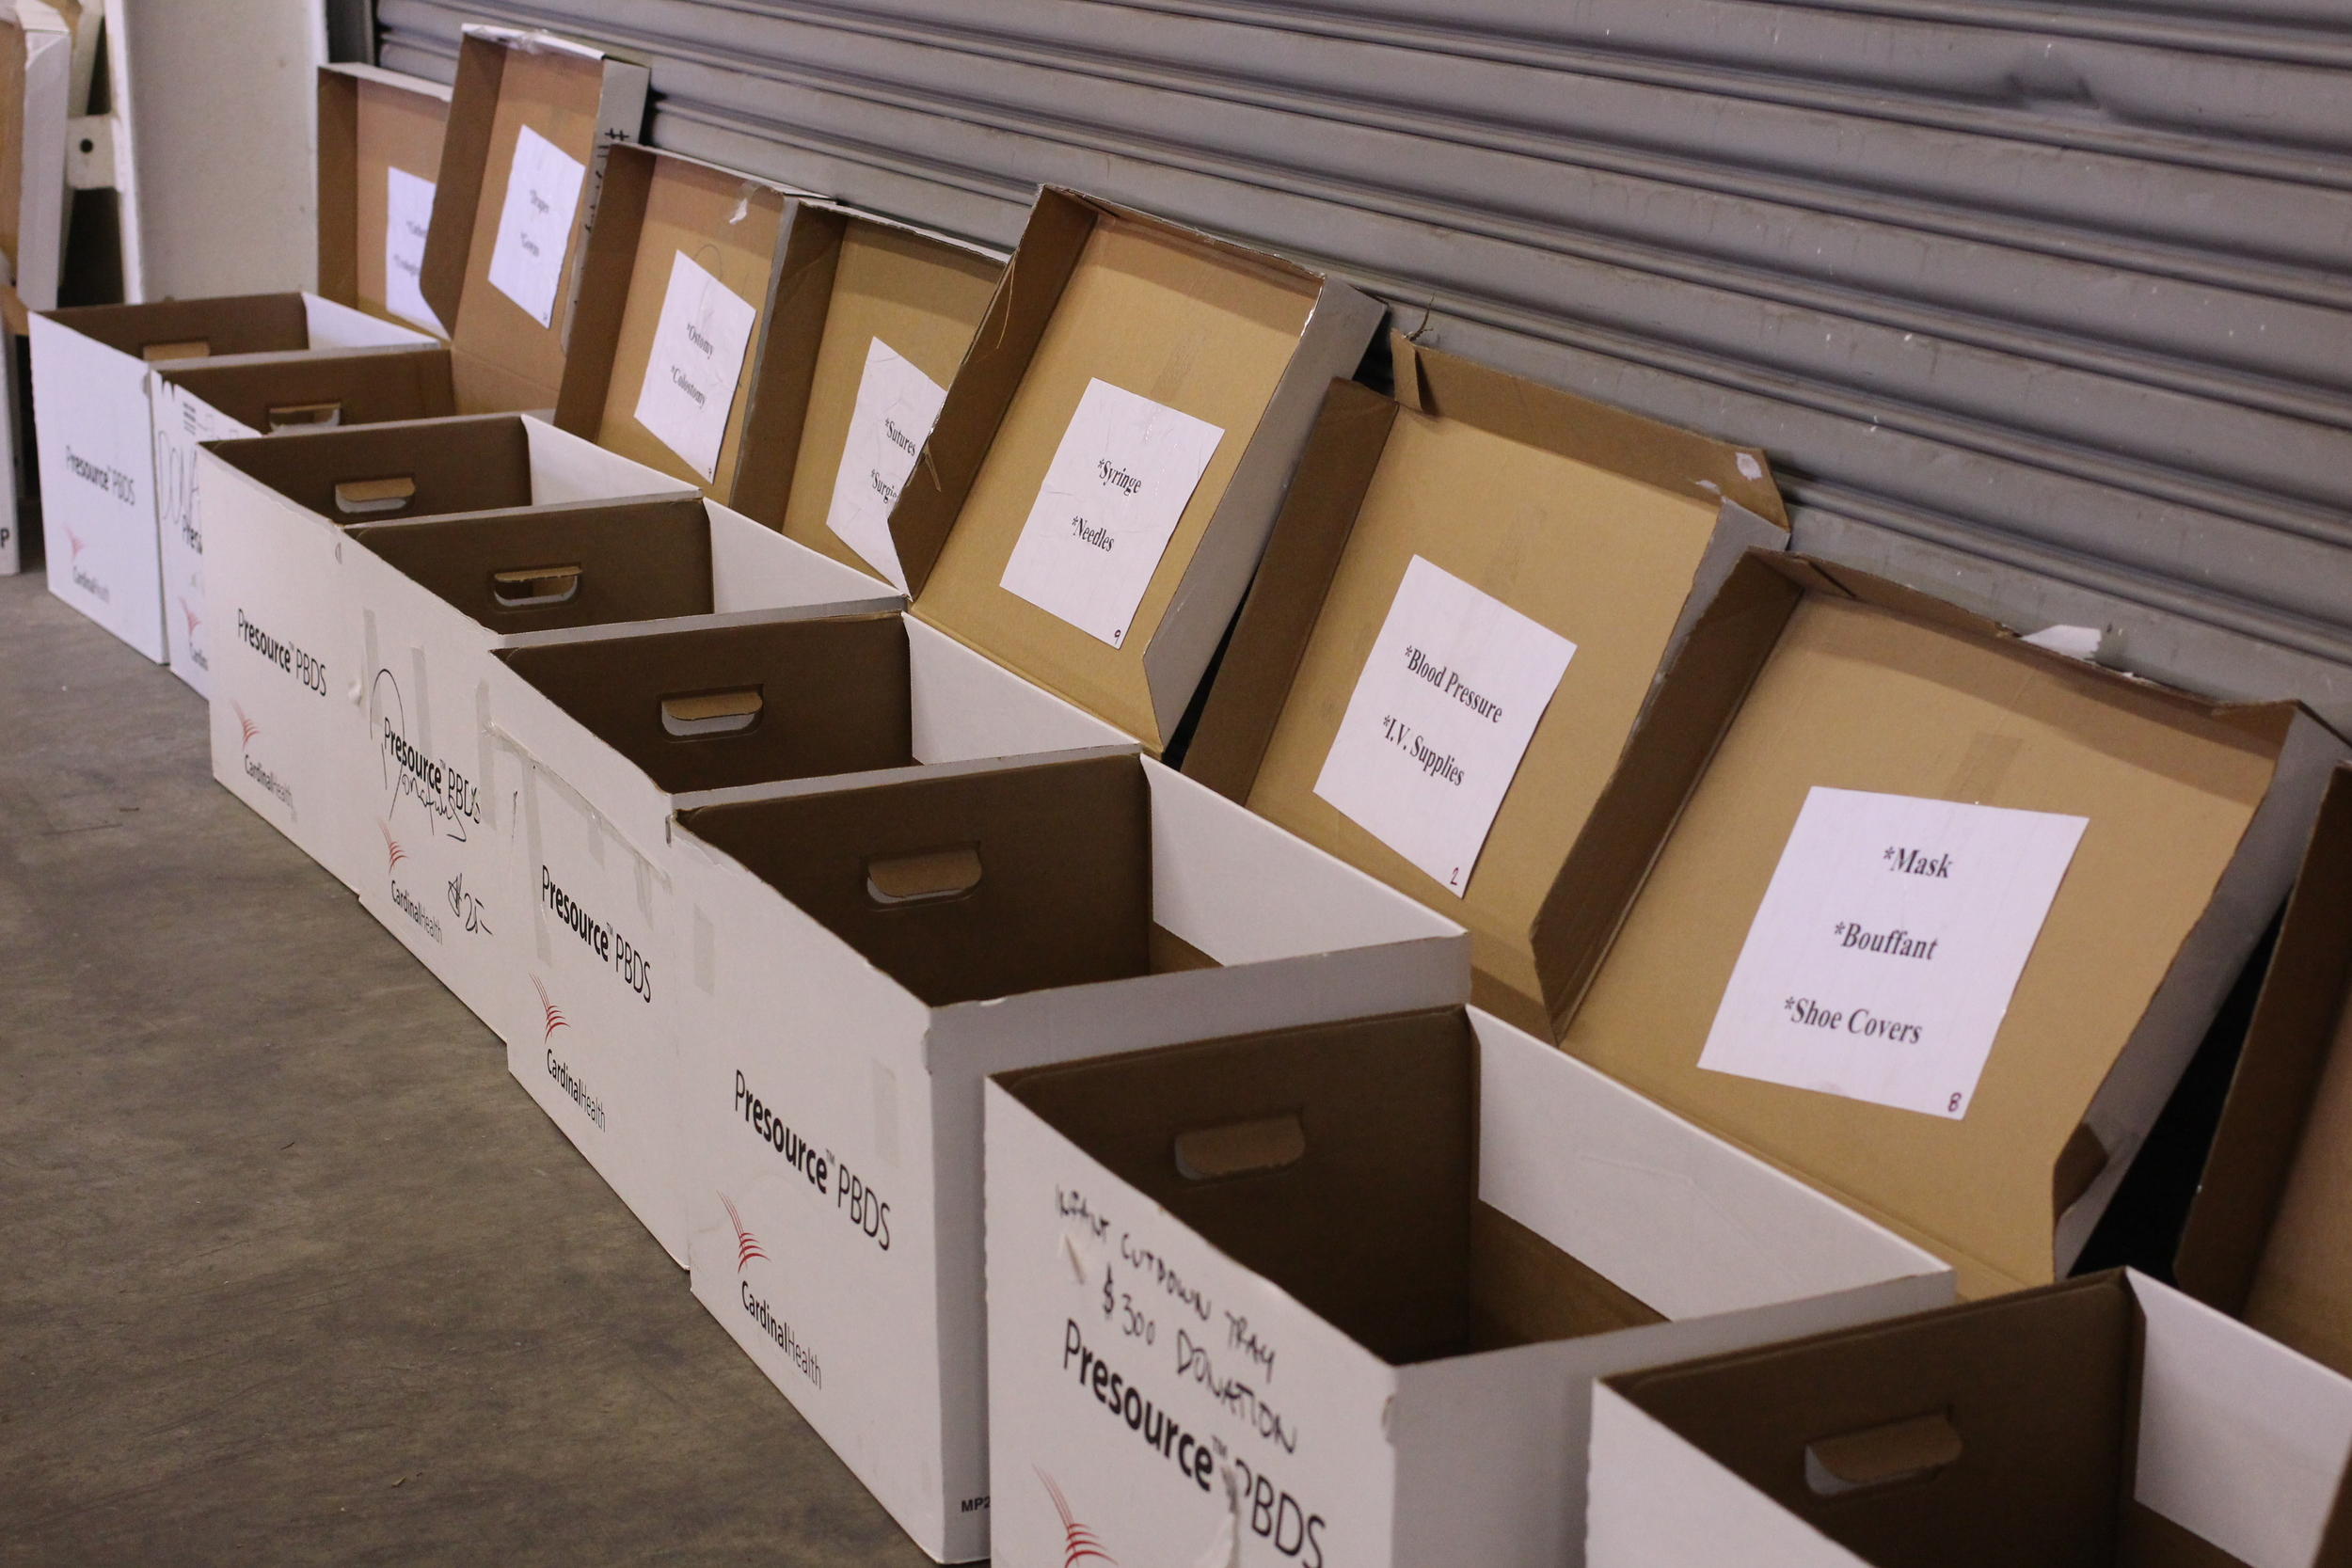 The many boxes at the warehouses holding different types of medical supplies.